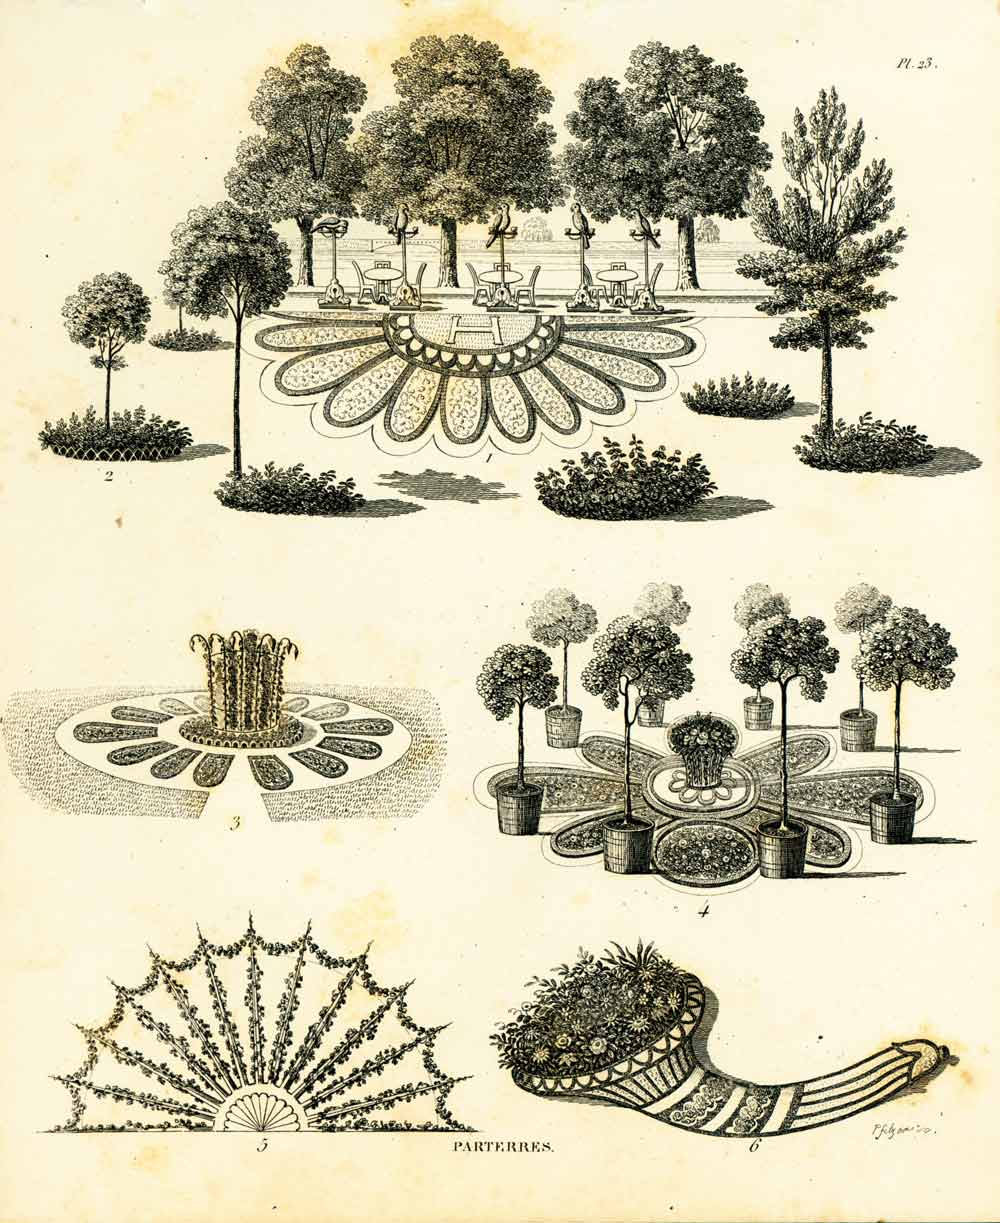 Decor De Parterre 1839 Garden Design Antique Ornamental Garden Print Carpet Bedding Horticulture Lithograph Wall Art Home Decor